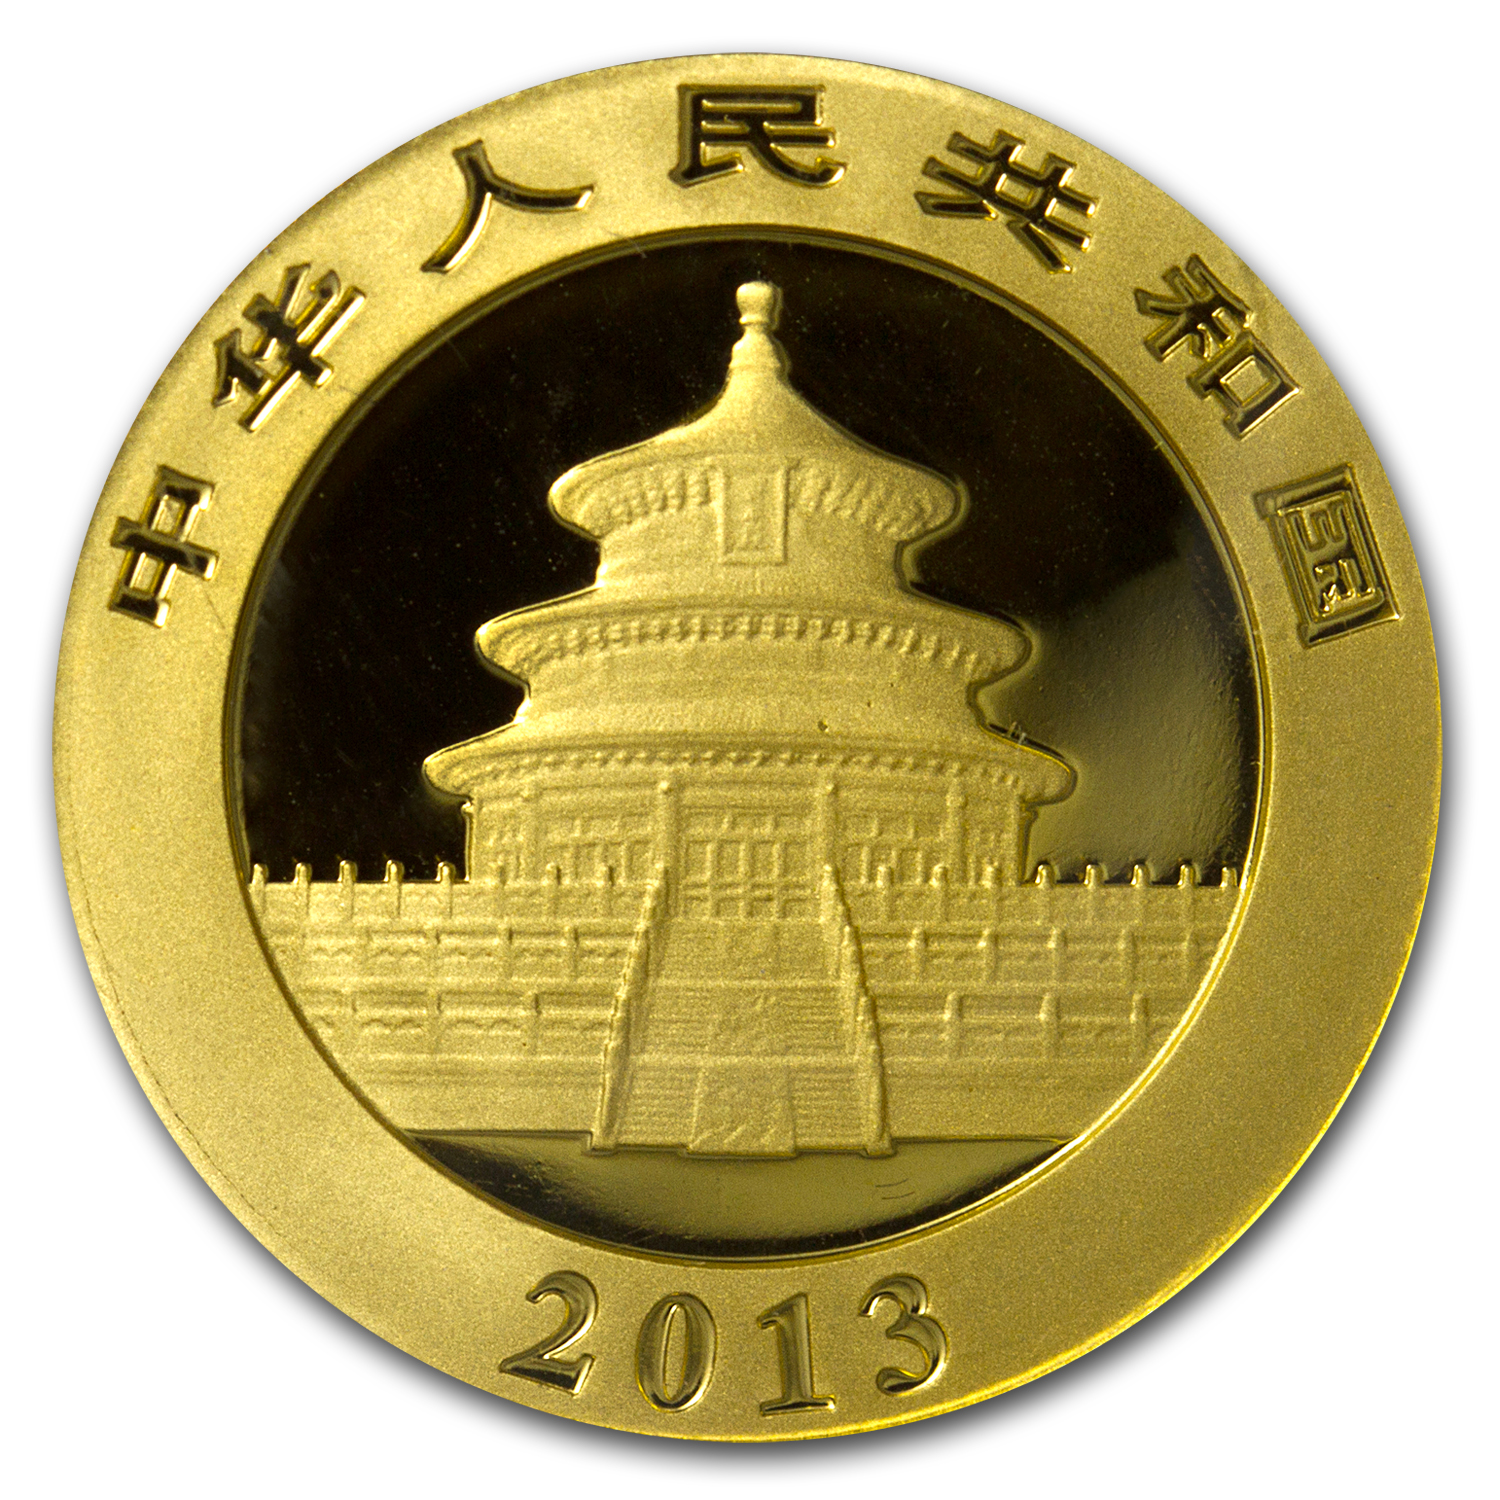 2013 China 1/10 oz Gold Panda BU (Sealed)